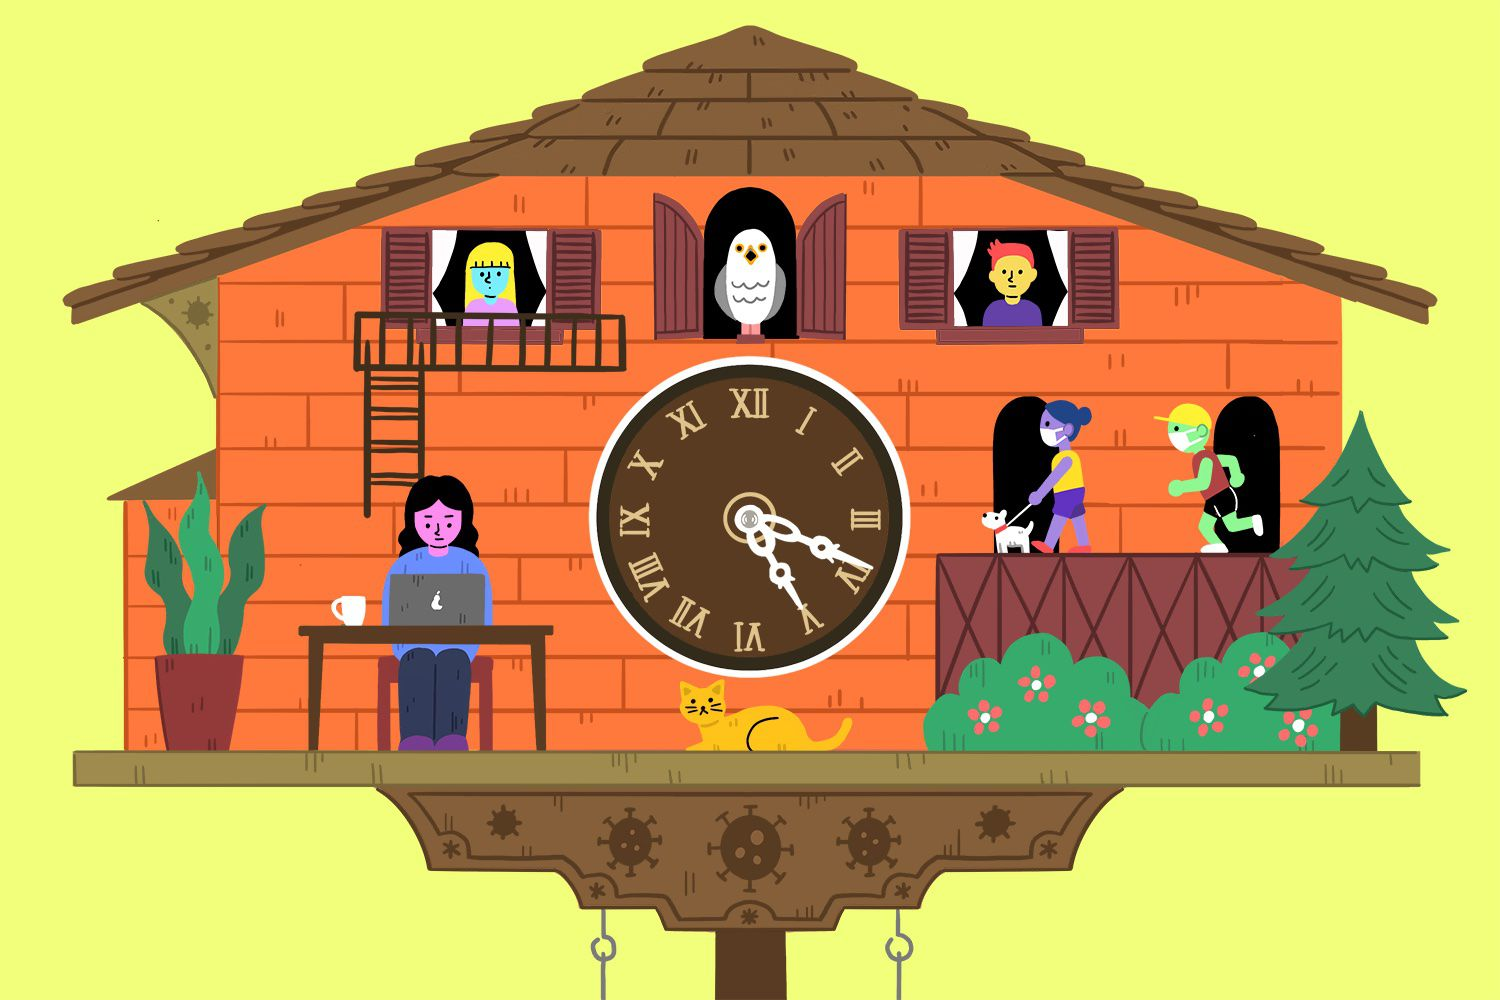 drawing of cuckoo clock with characters around it